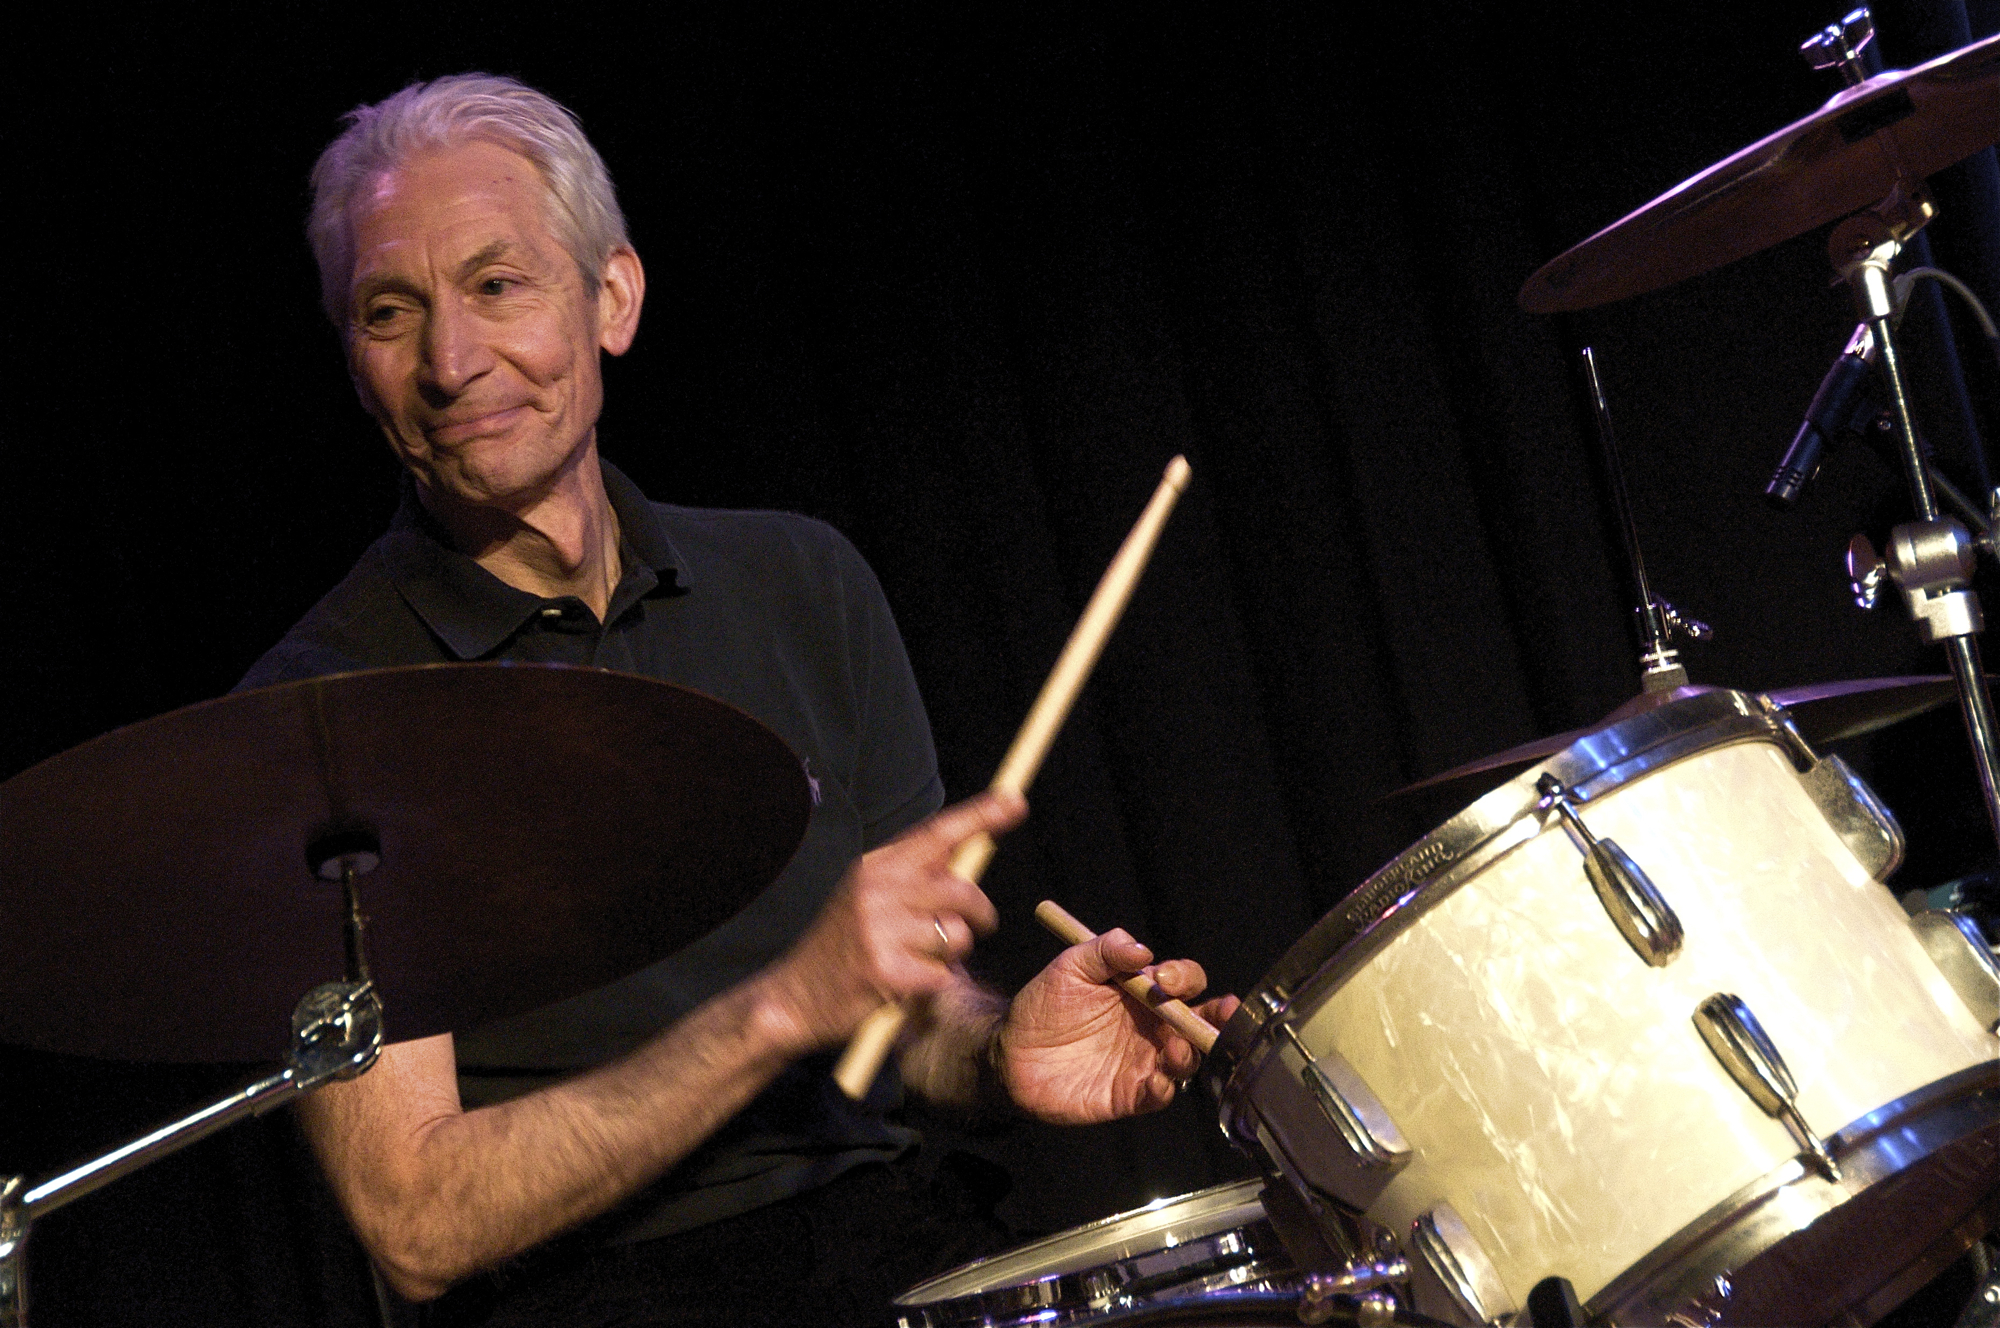 Charlie_Watts_on_drums_The_ABC_%26_D_of_